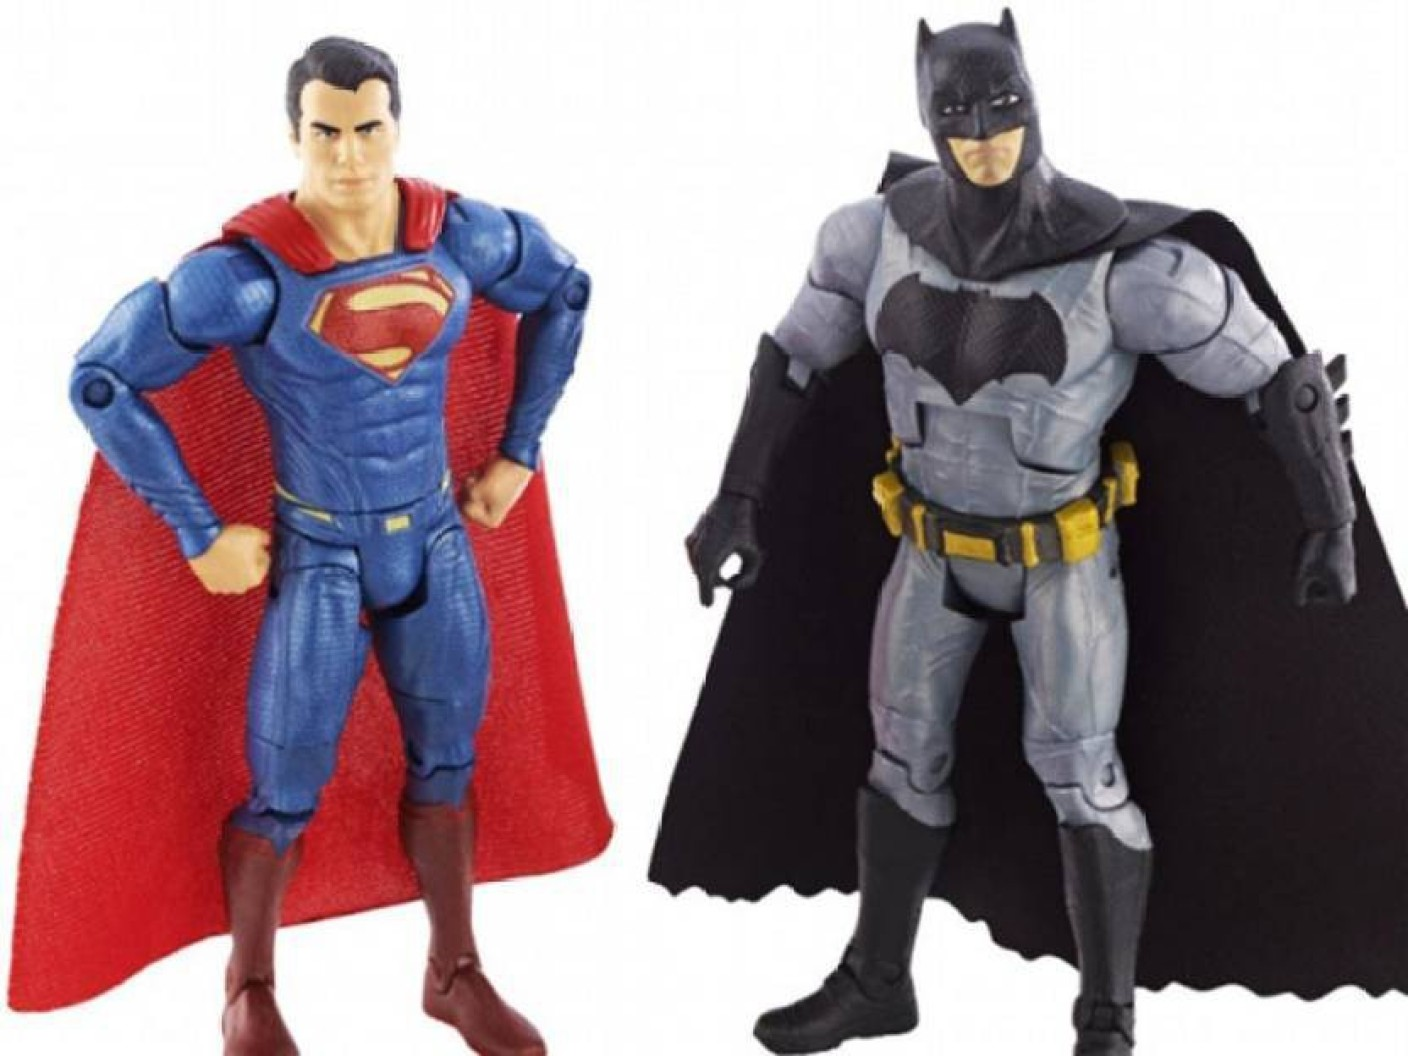 Best Superman Toys And Action Figures For Kids : Sanyal batman vs superman action figure character toys